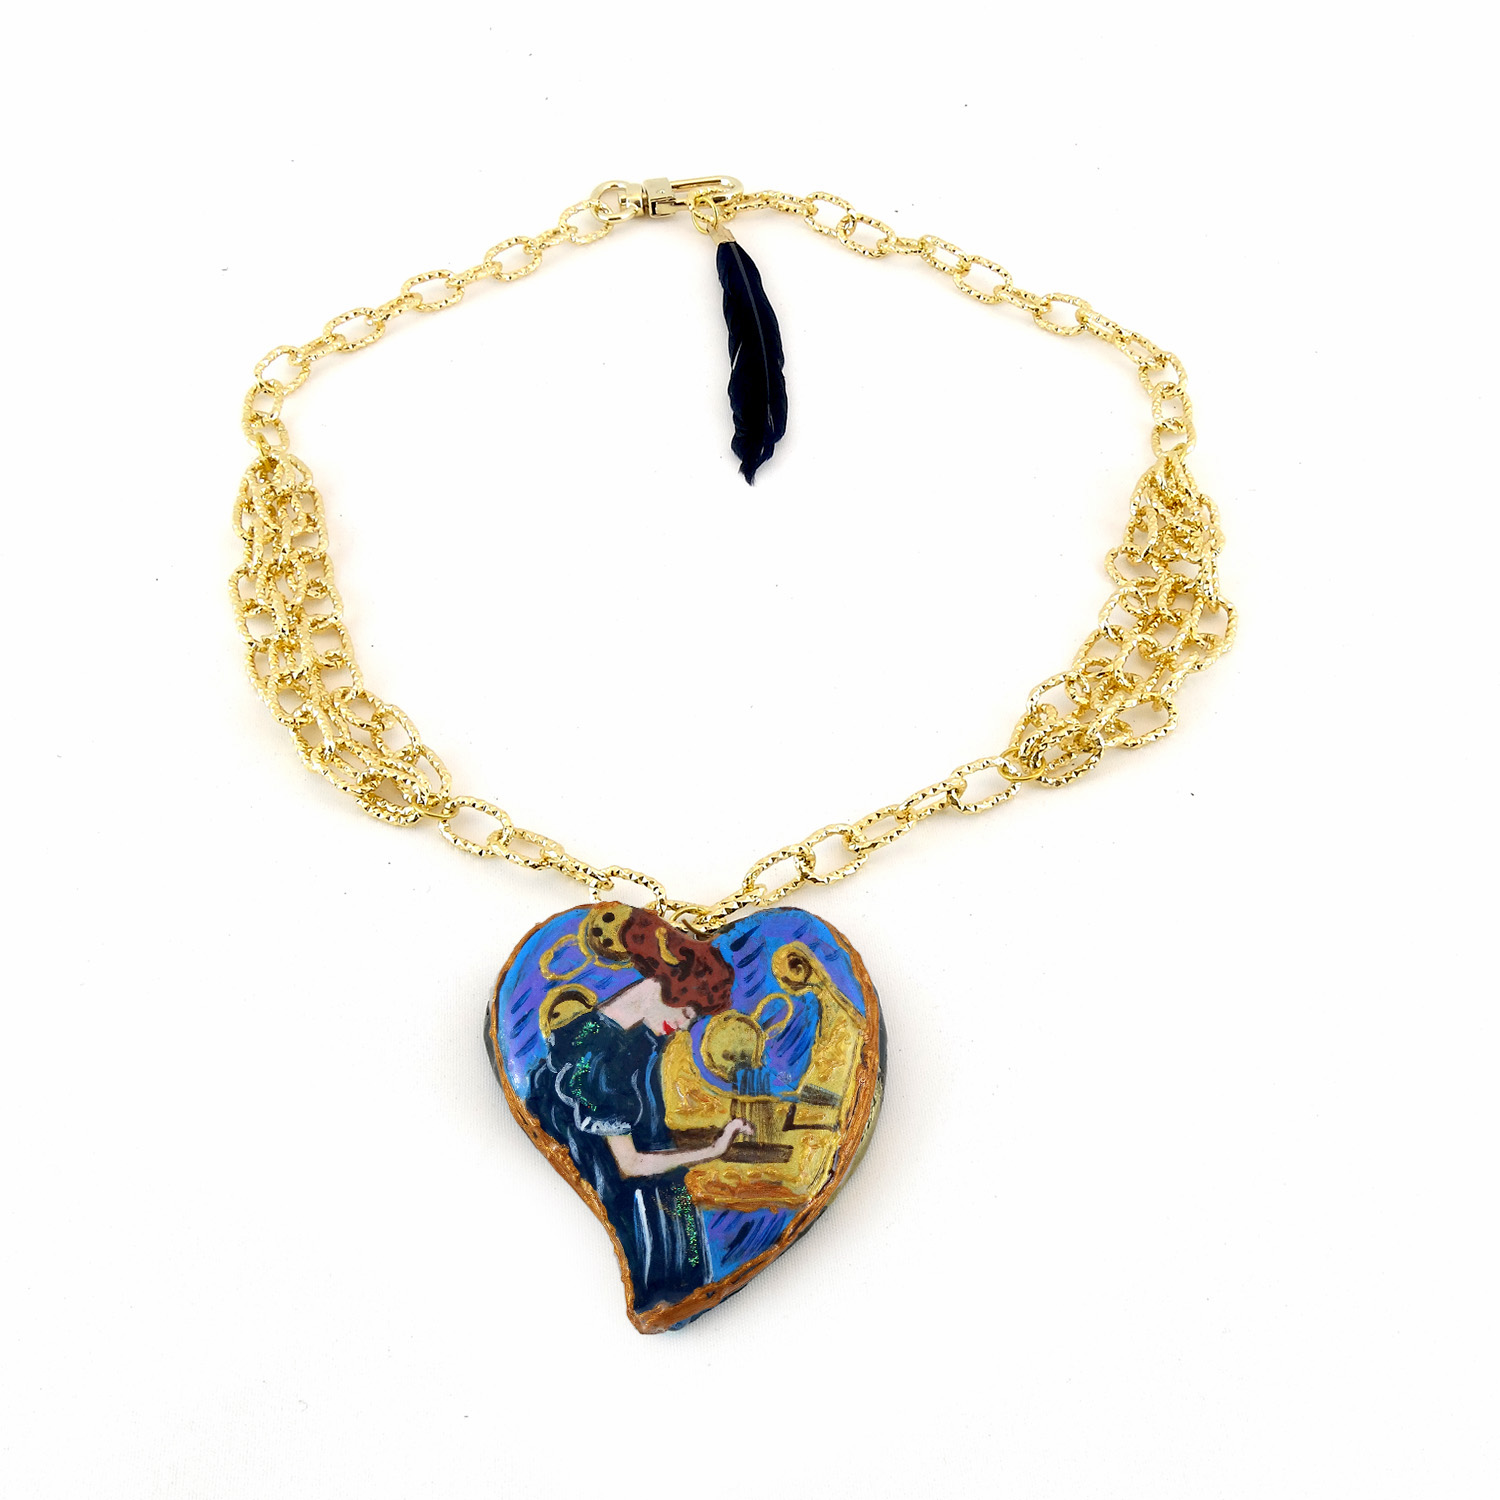 Hand-painted necklace - The Music by Klimt